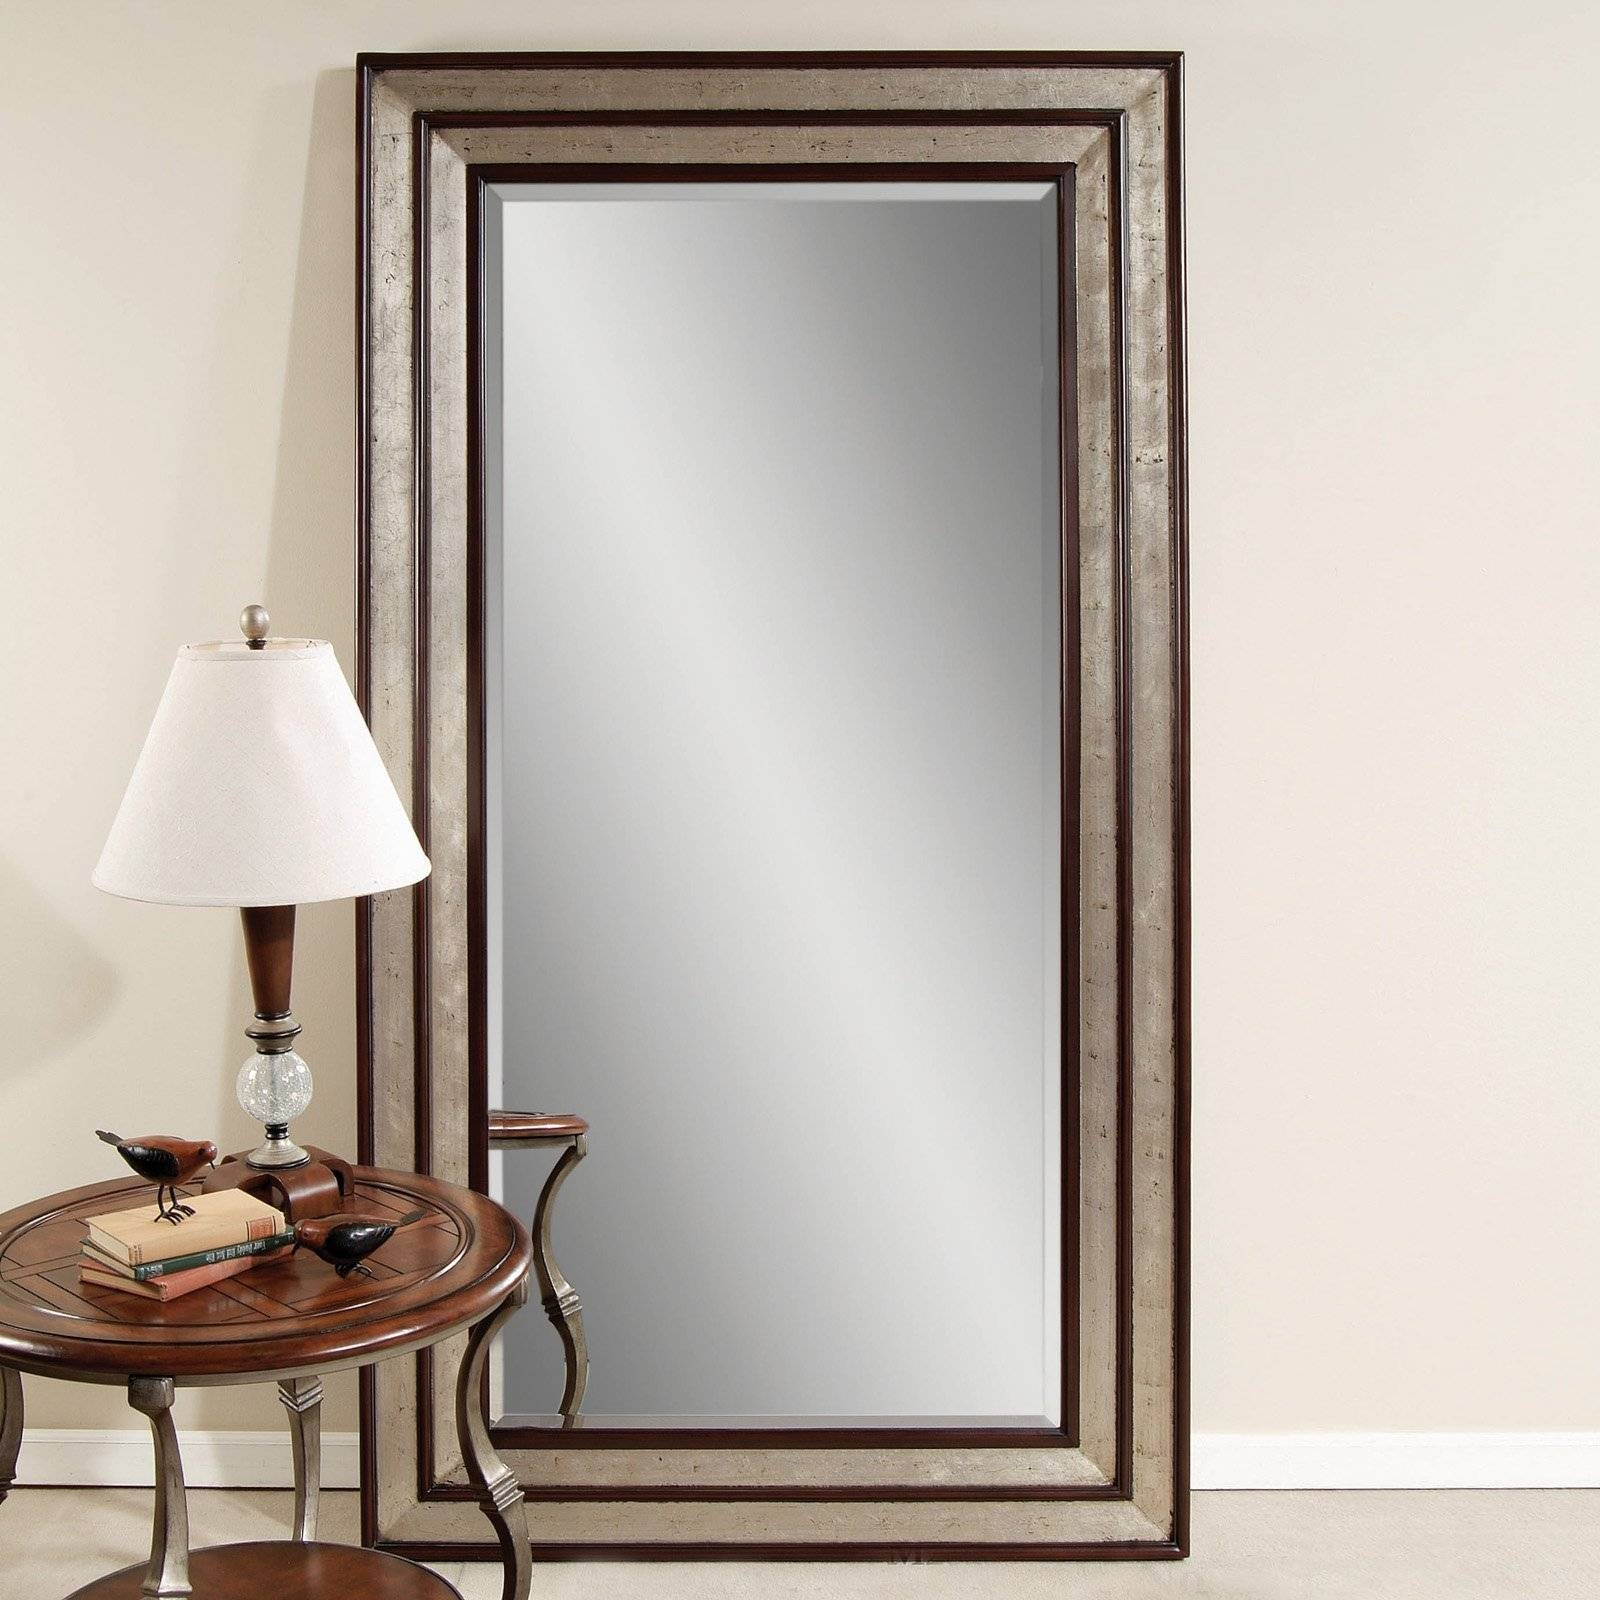 Furniture: Luxury Leaner Mirror For Home Accessories Ideas — Mtyp intended for Cream Wall Mirrors (Image 12 of 25)